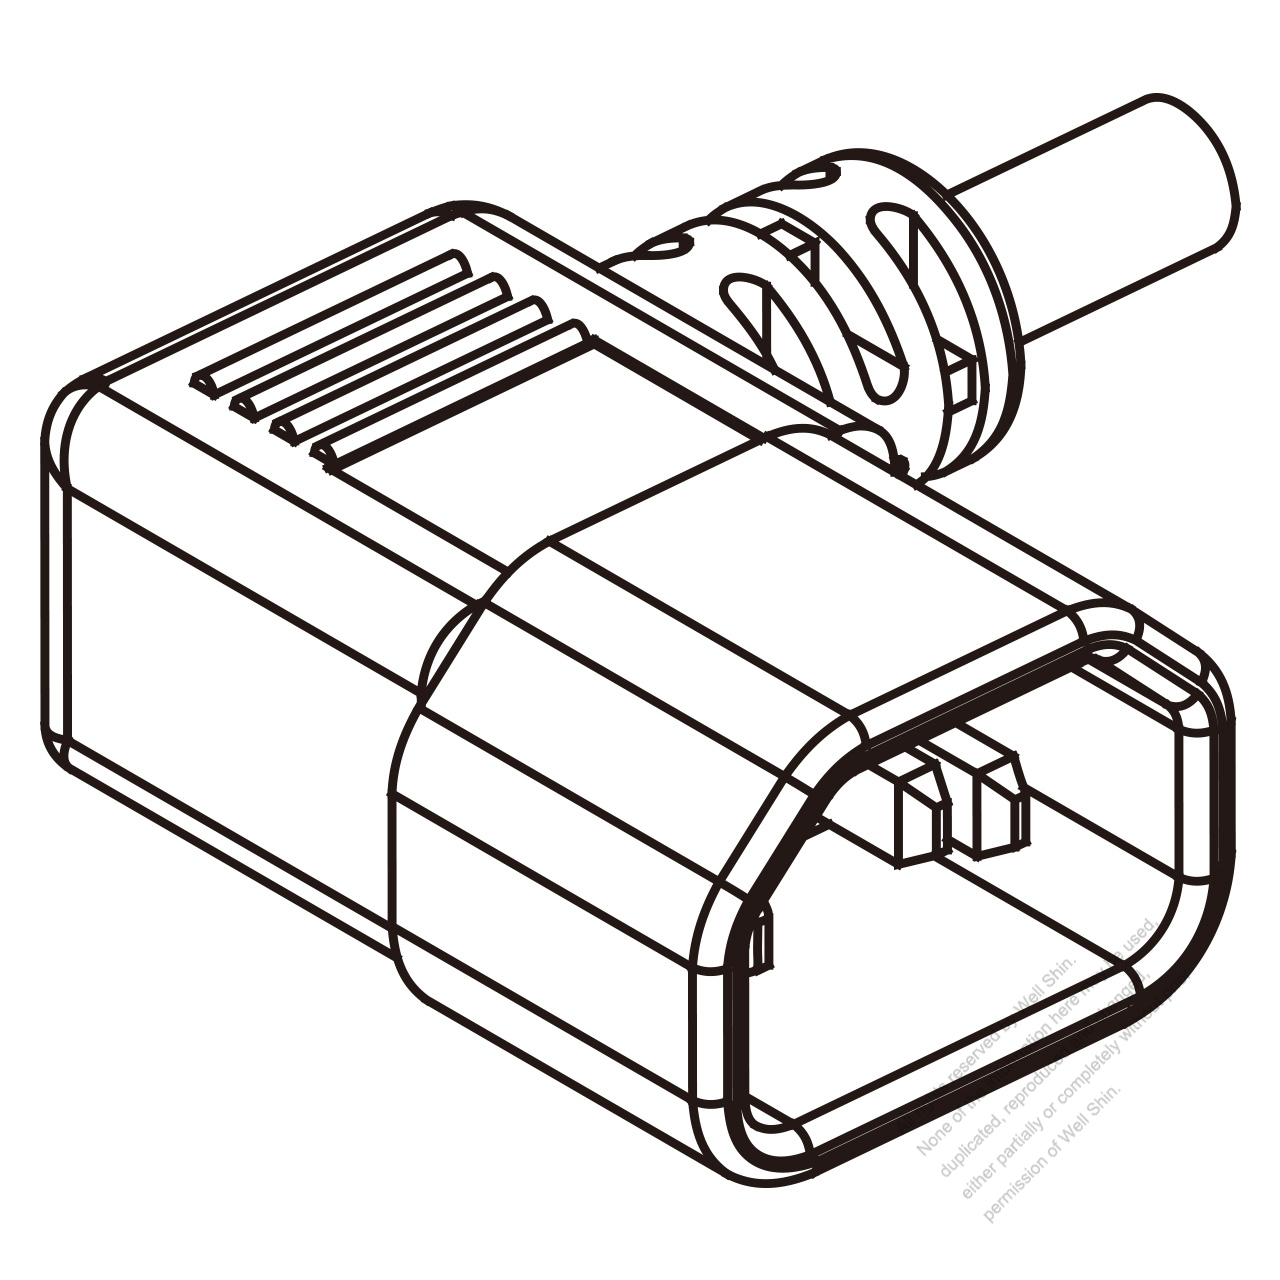 Iec 320 Sheet E C14 Plug Connectors 3 Pin Angle 10a 13a 15a 125 250v